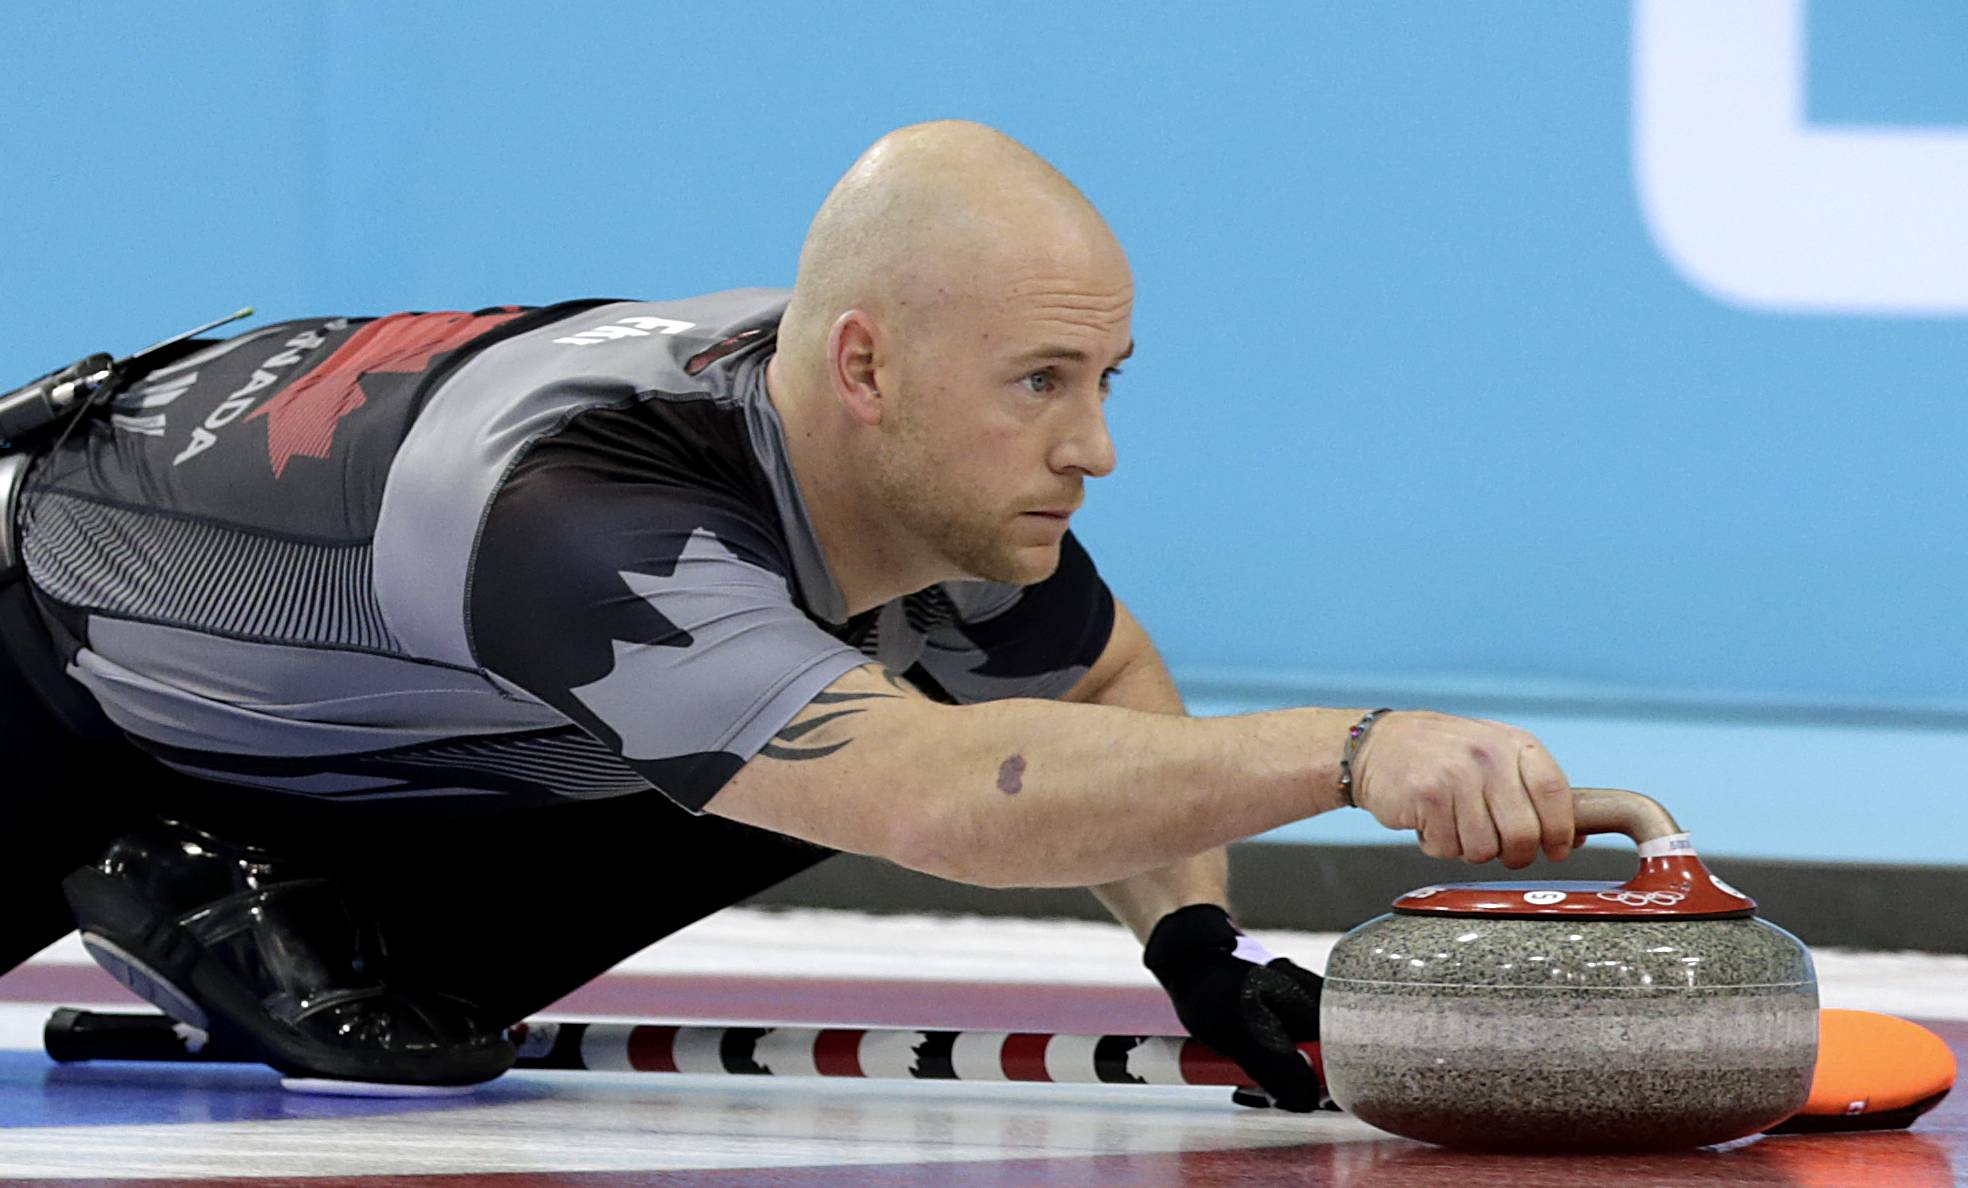 Canada's Ryan Fry delivers the rock during the men's curling semifinal game.